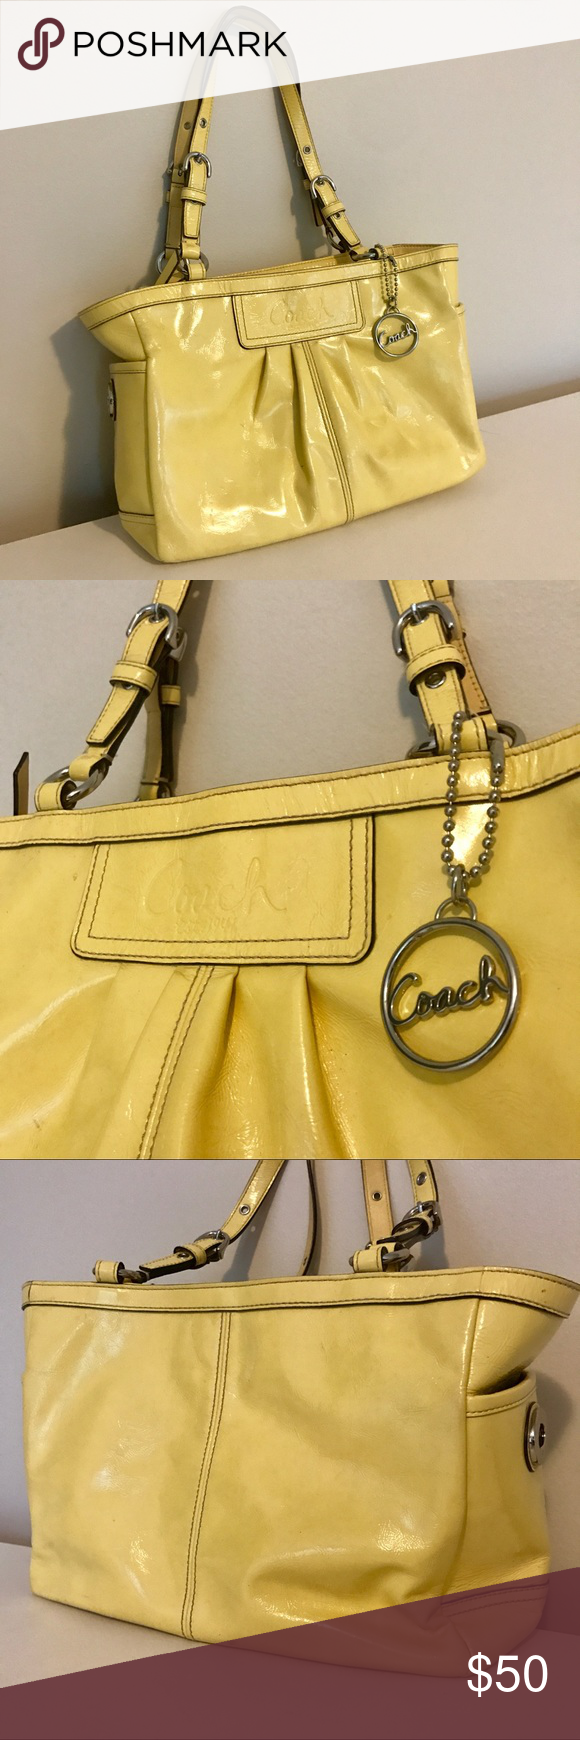 Yellow Coach Purse Used Authentic Yellow Coach Purse